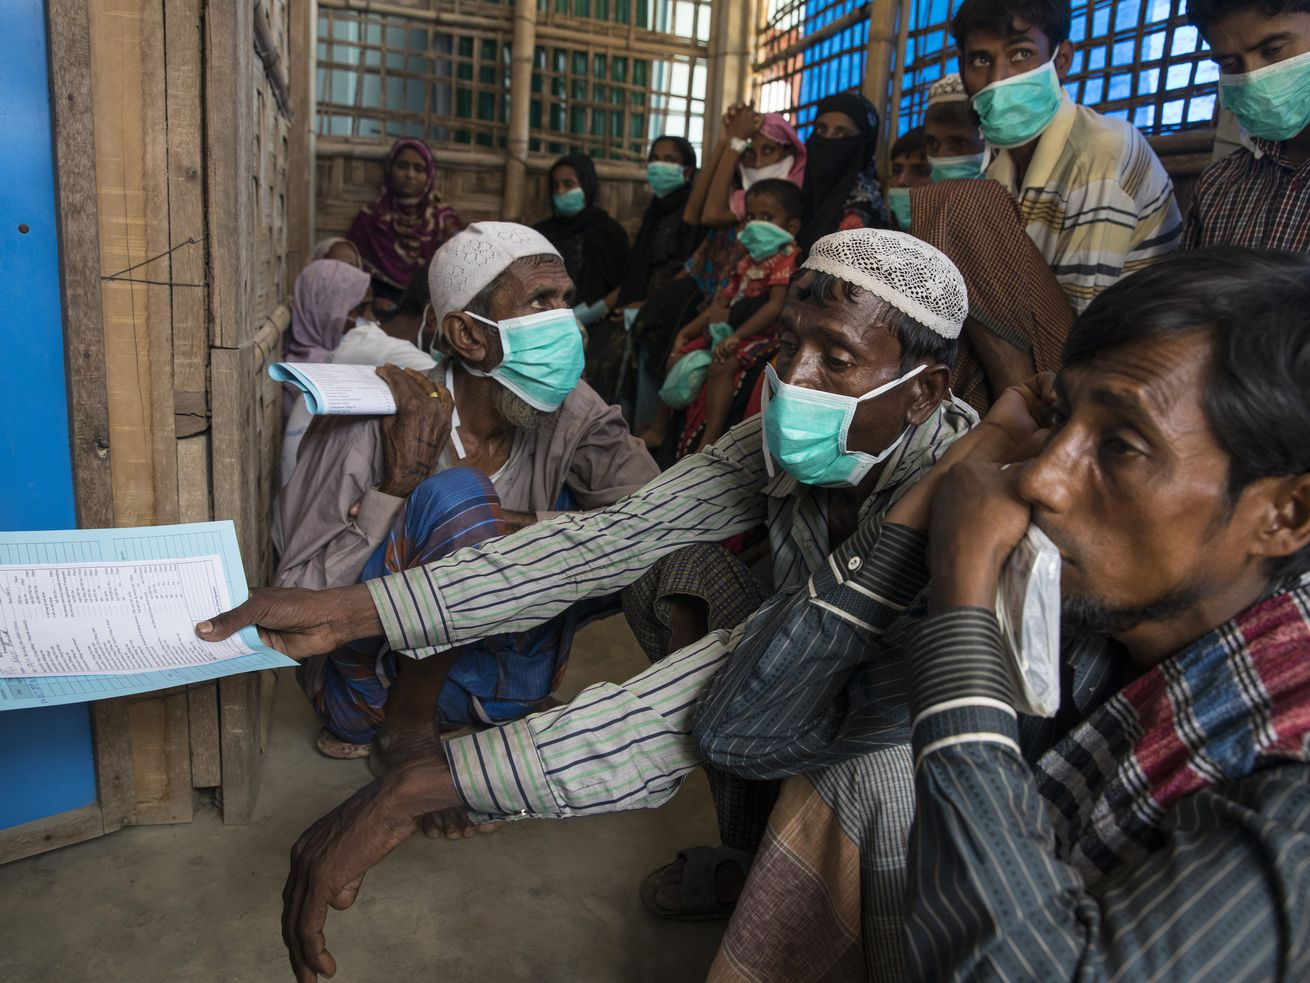 Patients wait for testing and medical treatment for tuberculosis at the Doctors Without Borders Kutupalong clinic on October 4, 2017, in Cox's Bazar, Bangladesh.